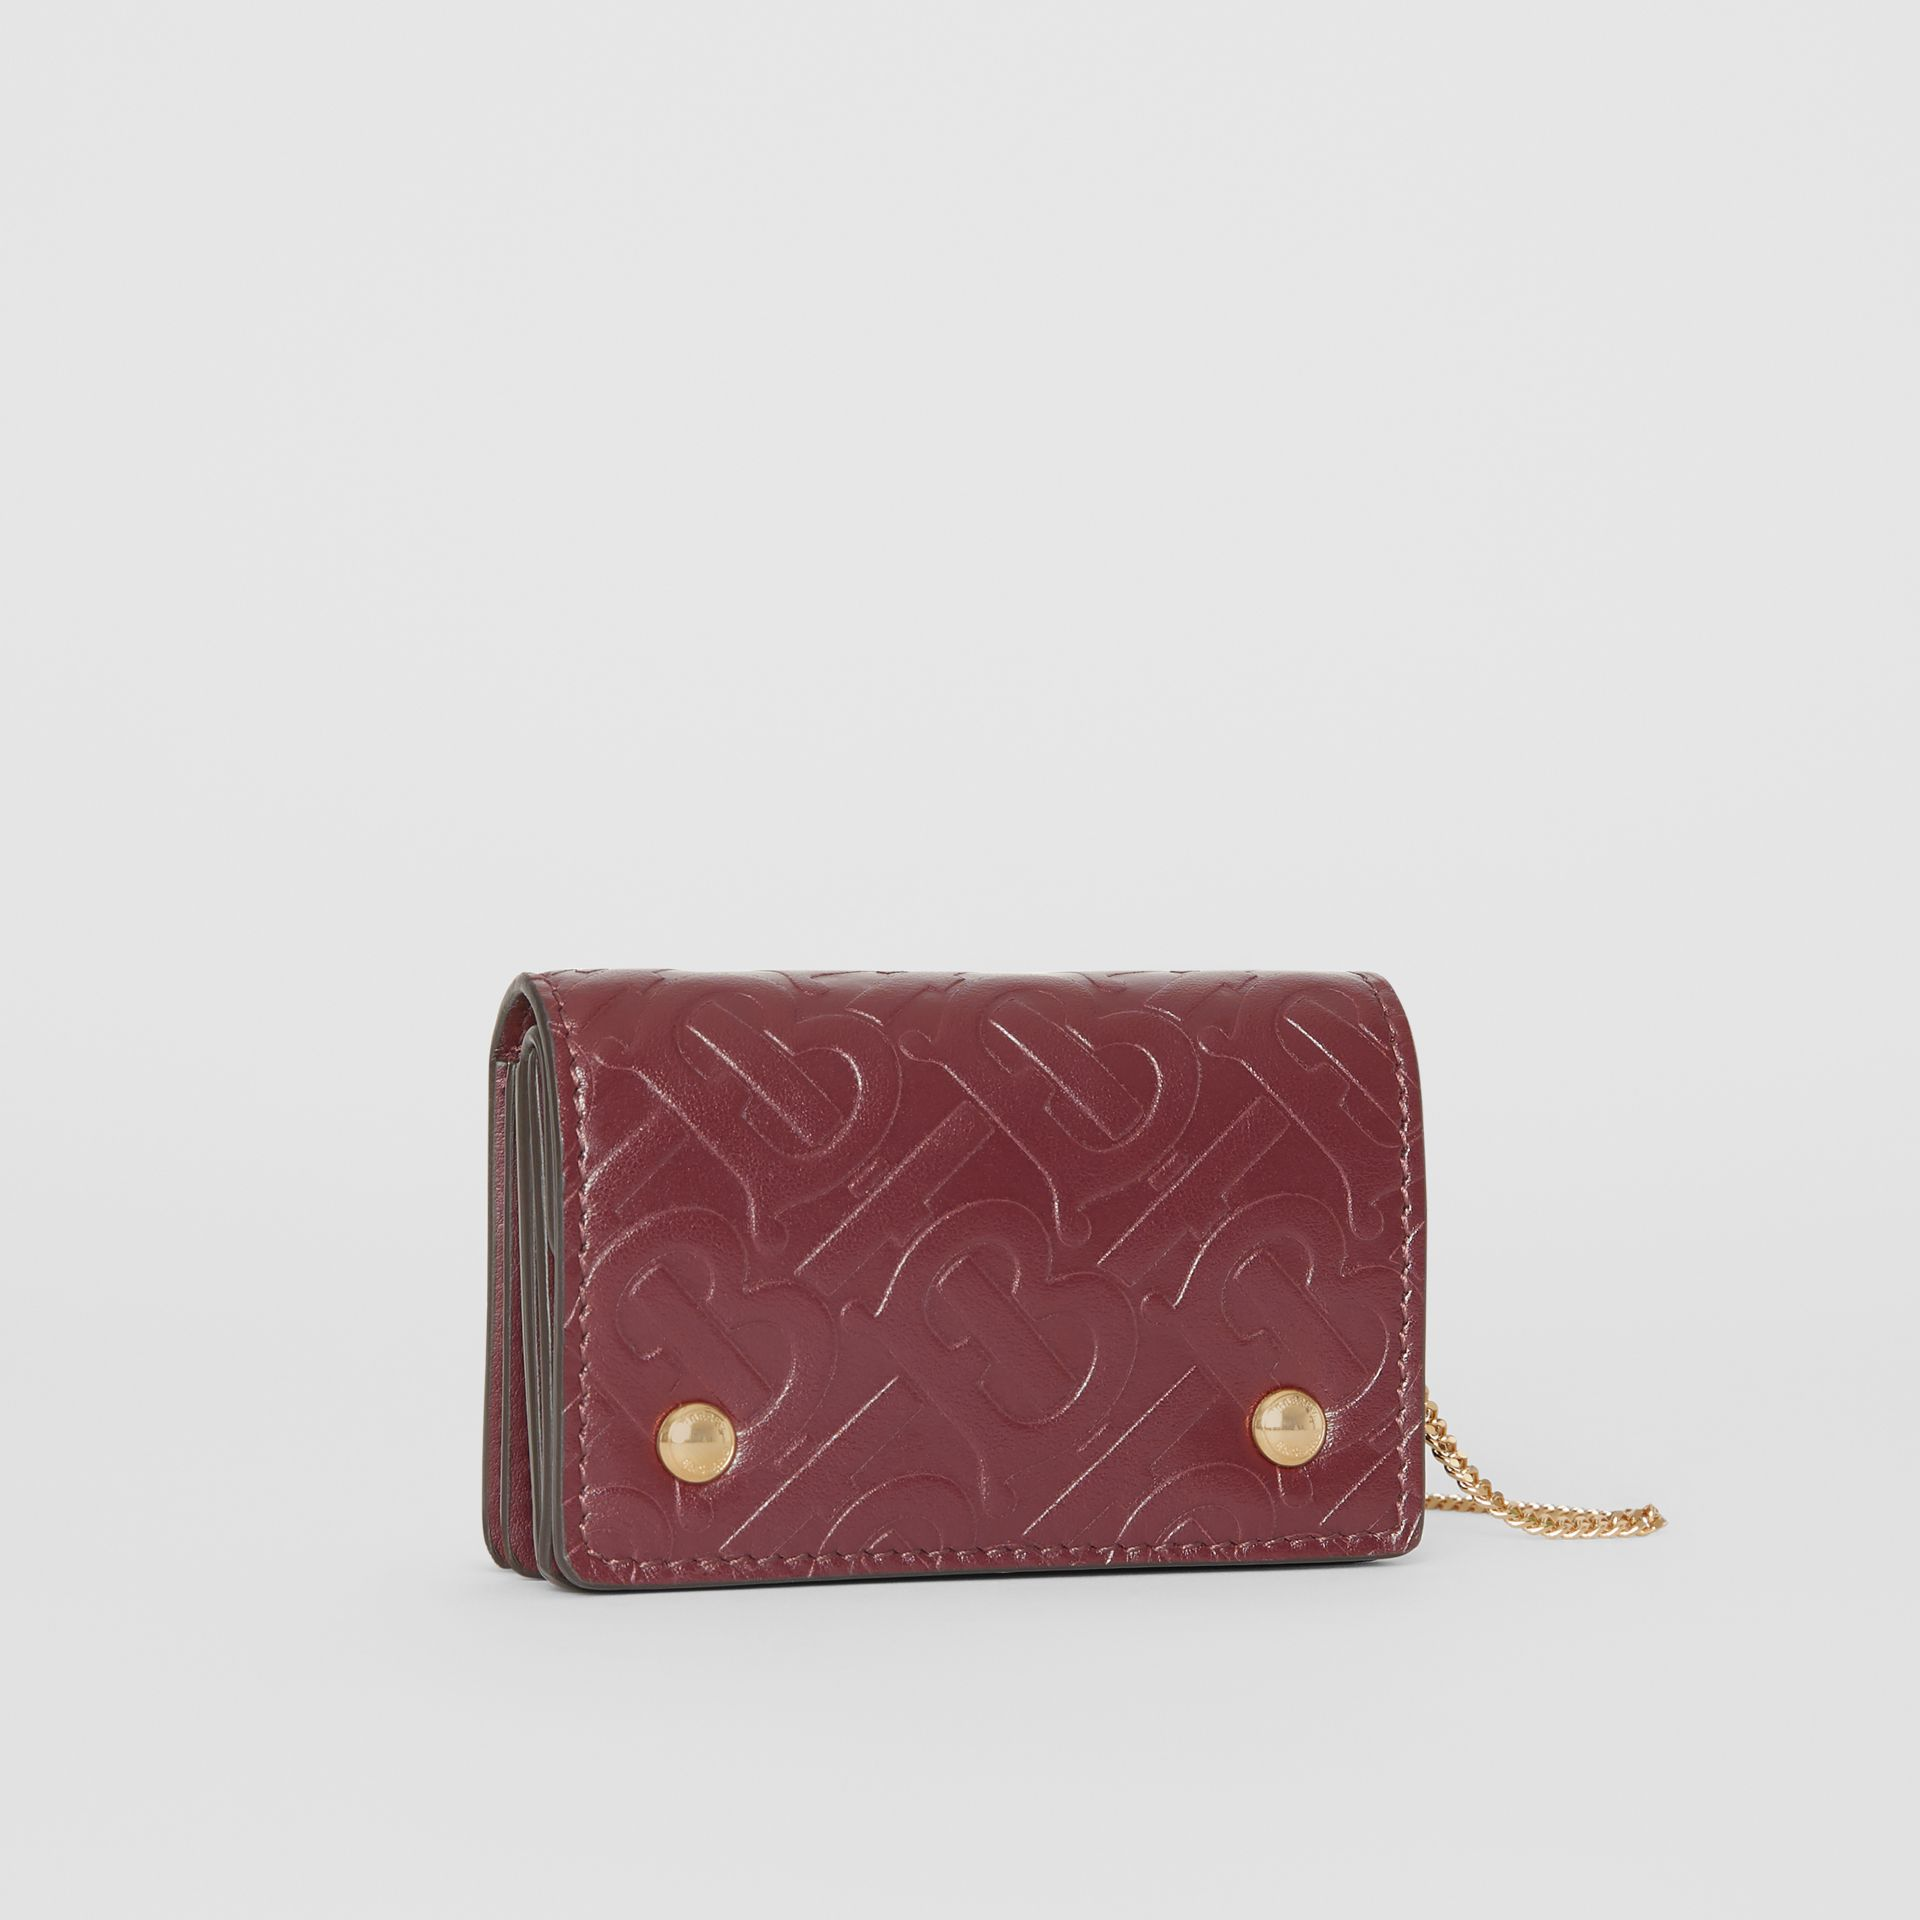 Monogram Leather Card Case with Detachable Strap in Oxblood - Women | Burberry - gallery image 4